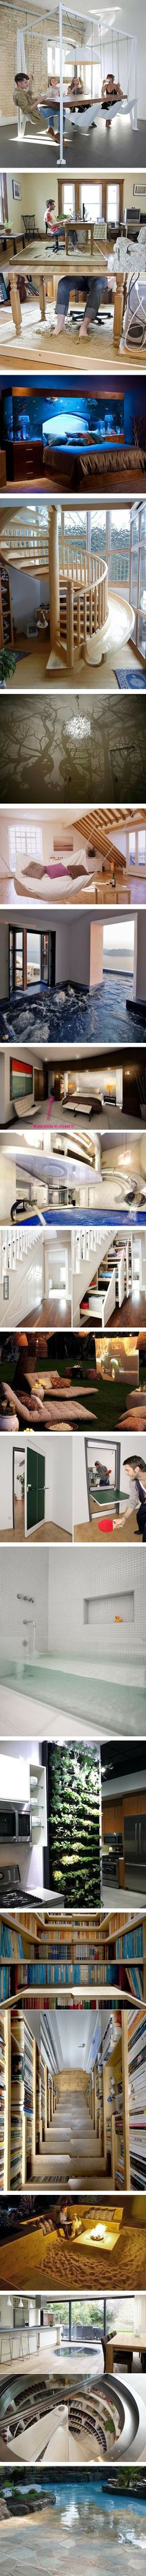 18 #Awesome #House Ideas!